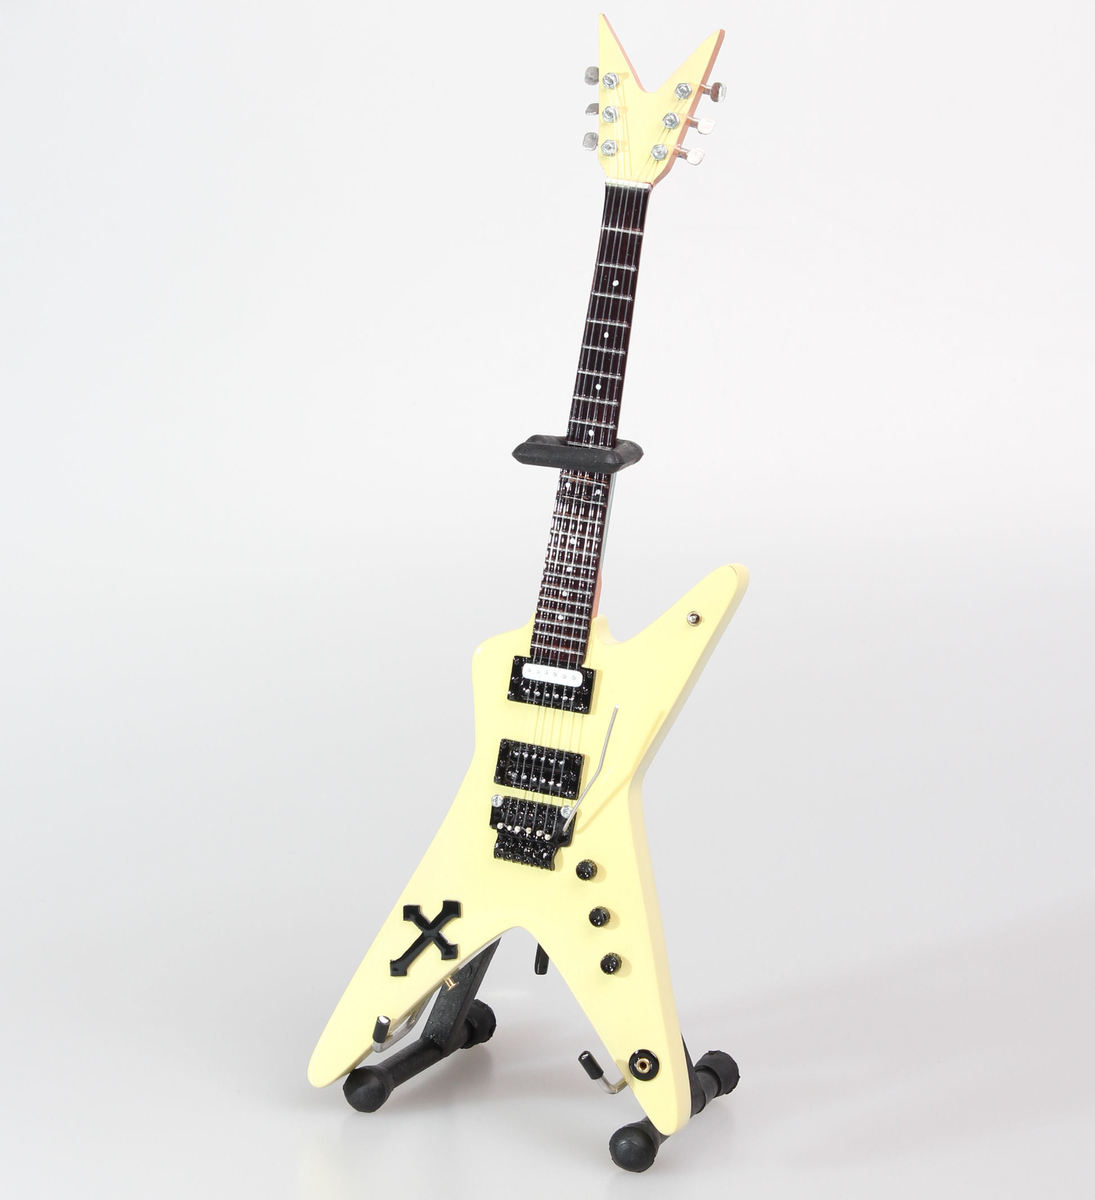 kytara Pantera - Dimebag Darrell - Yellow Cross - MINI GUITAR USA - DD Yellow